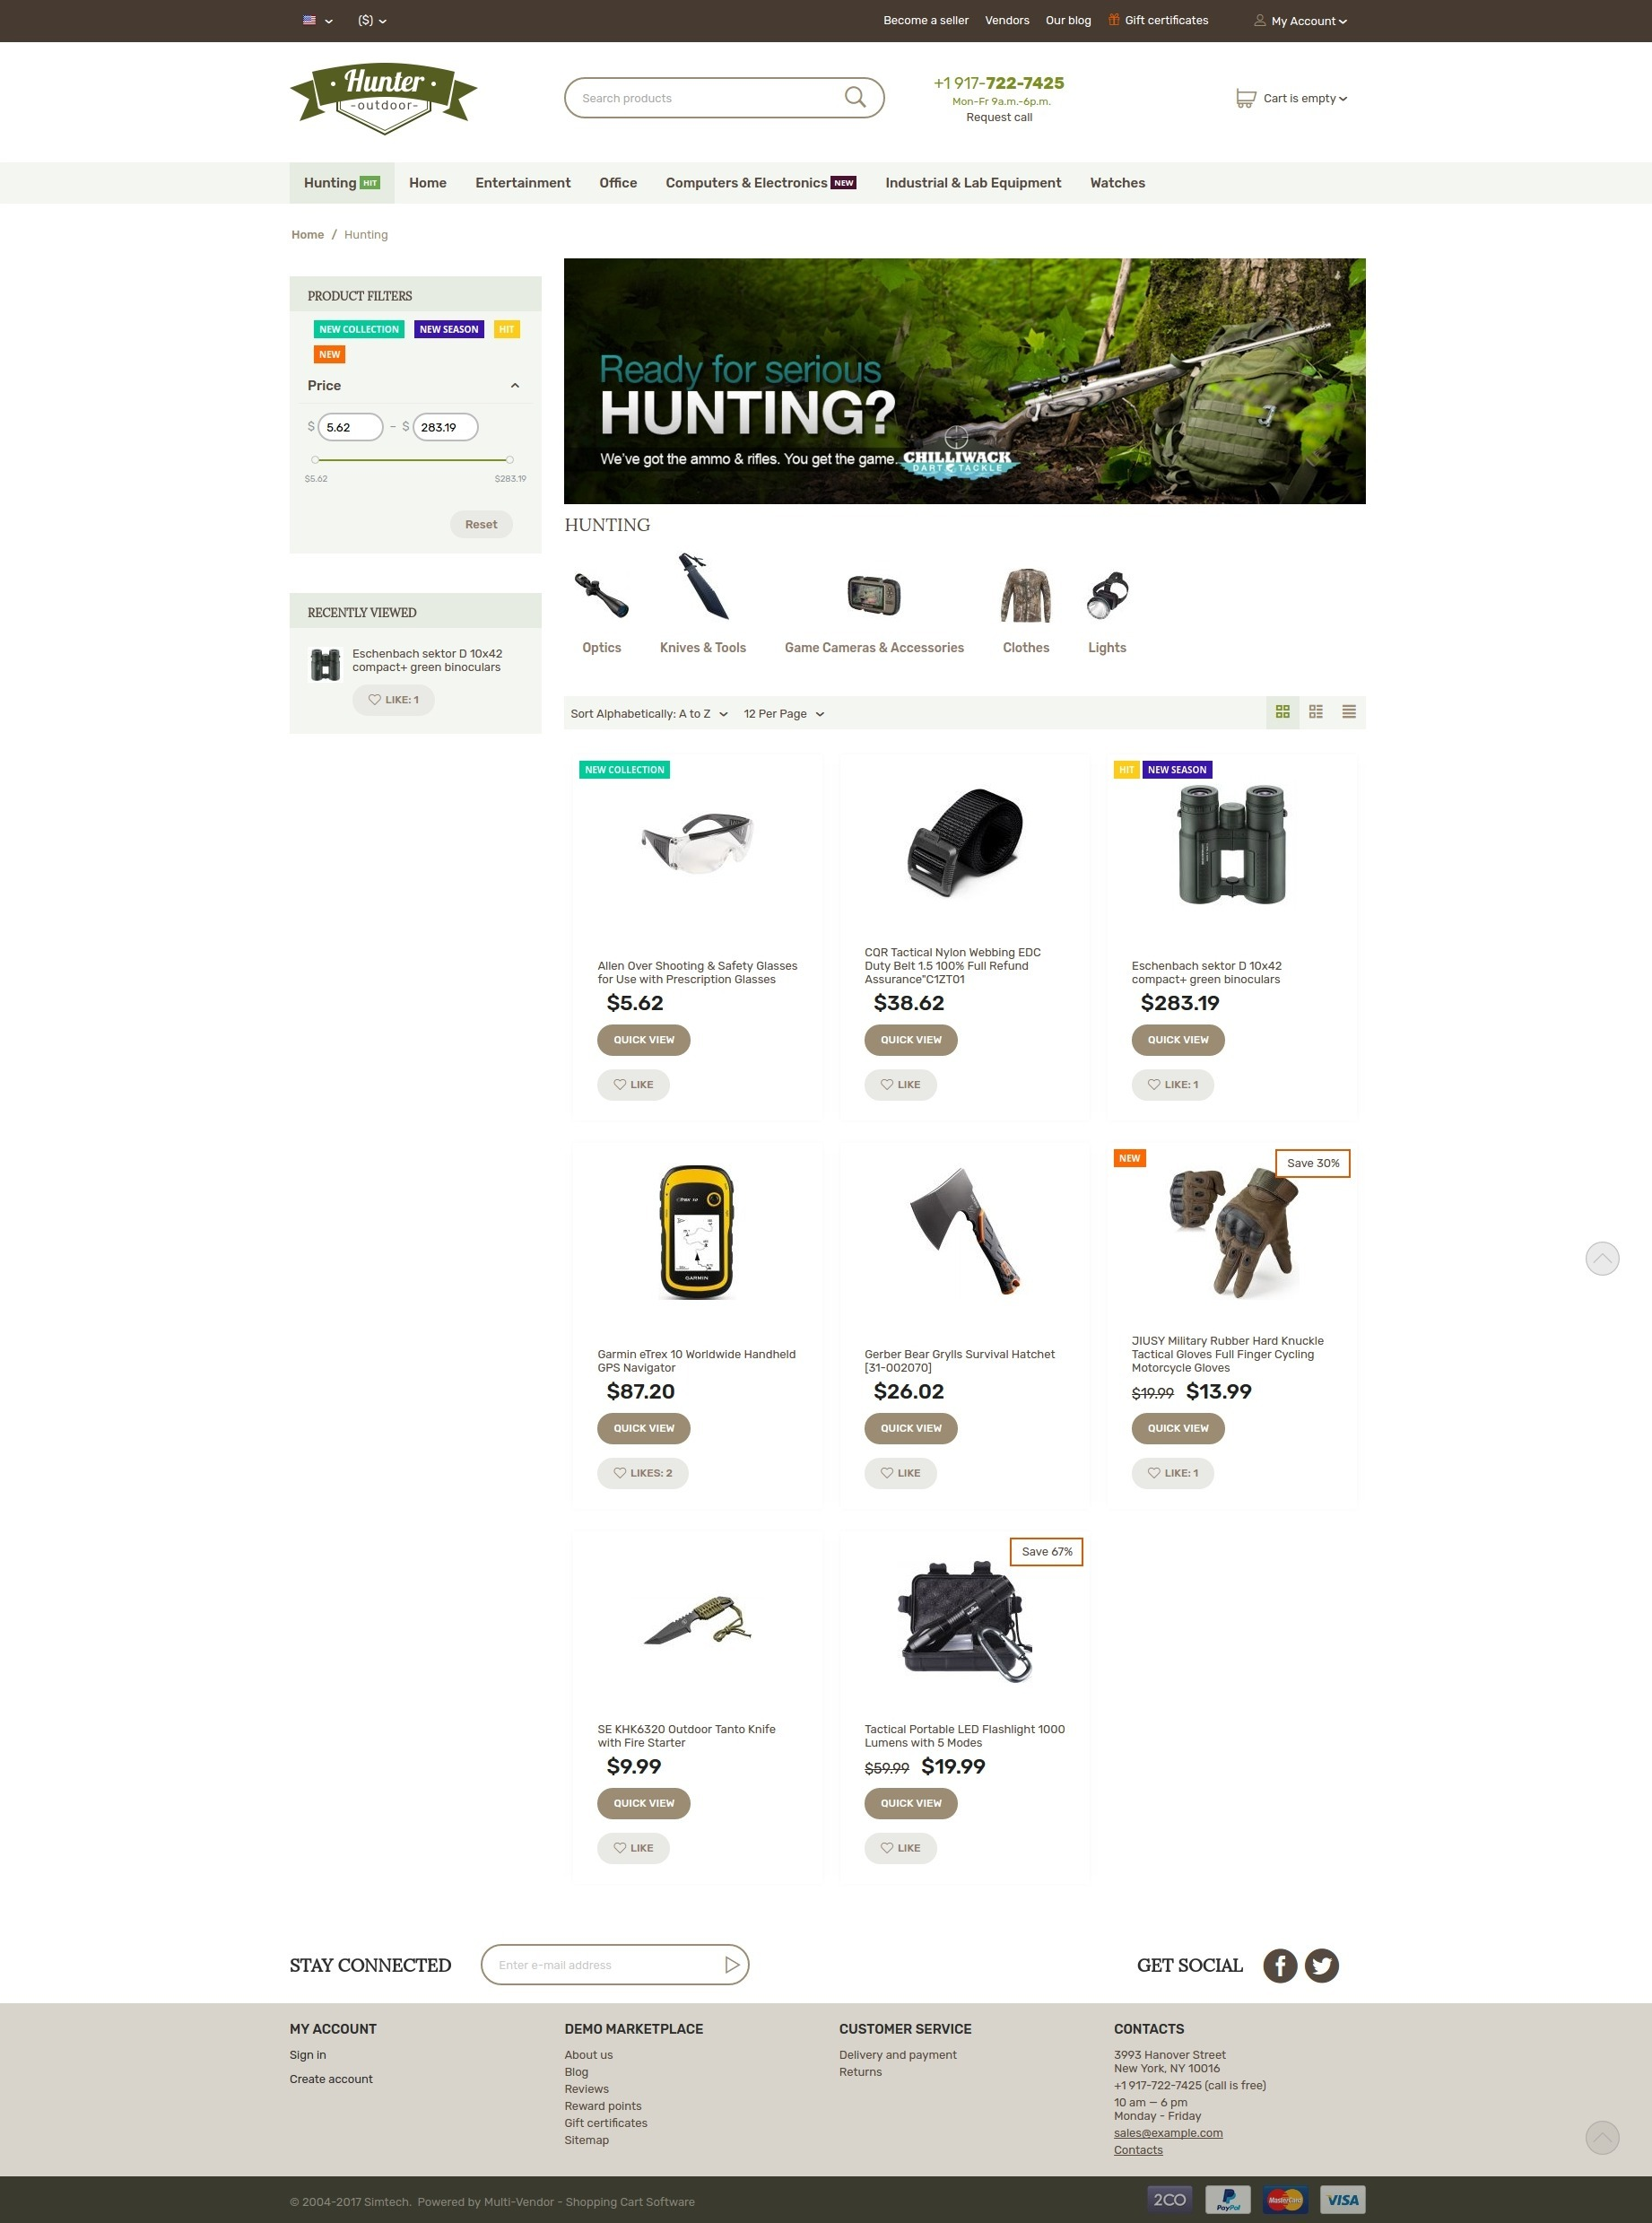 hunter-theme-catalog.jpg?1511973320485